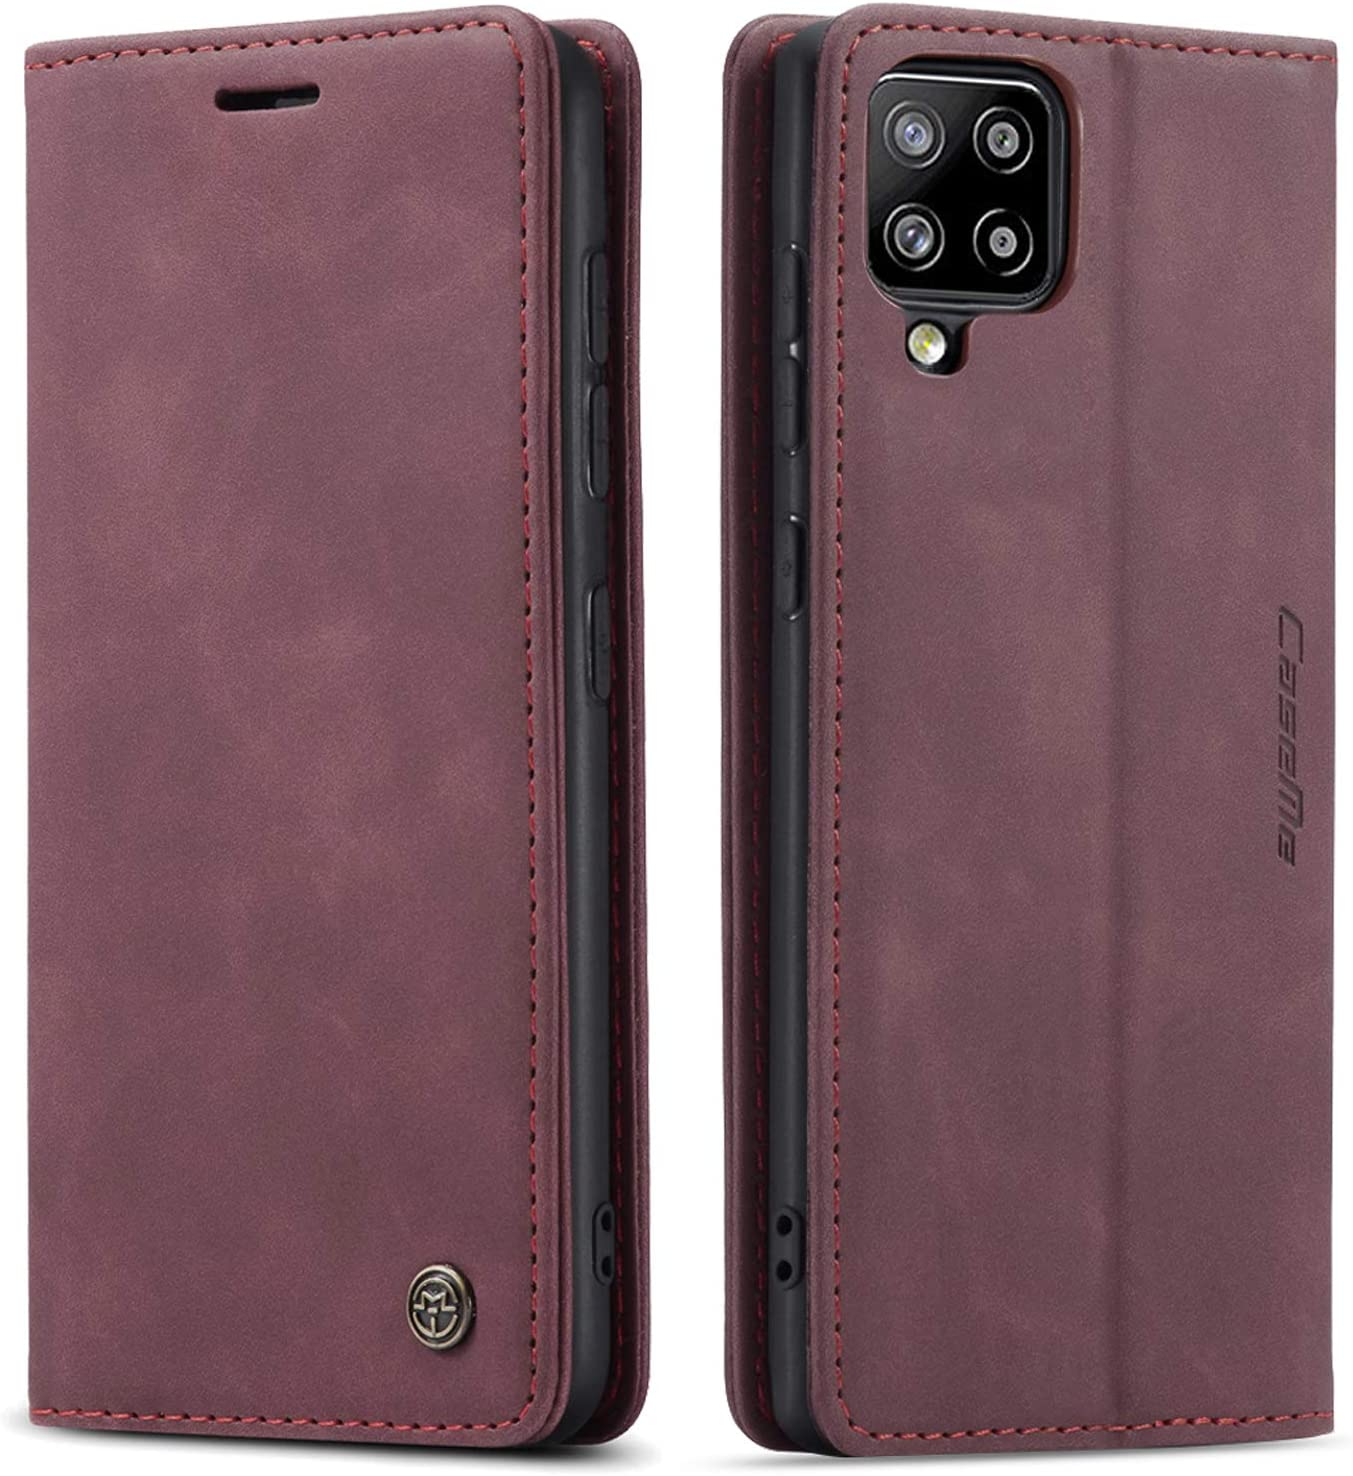 Kowauri Flip Case for Samsung Galaxy A42 5G,Leather Wallet Case Classic Design with Card Slot and Magnetic Closure Flip Fold Case for Samsung Galaxy A42 5G (Wine red)